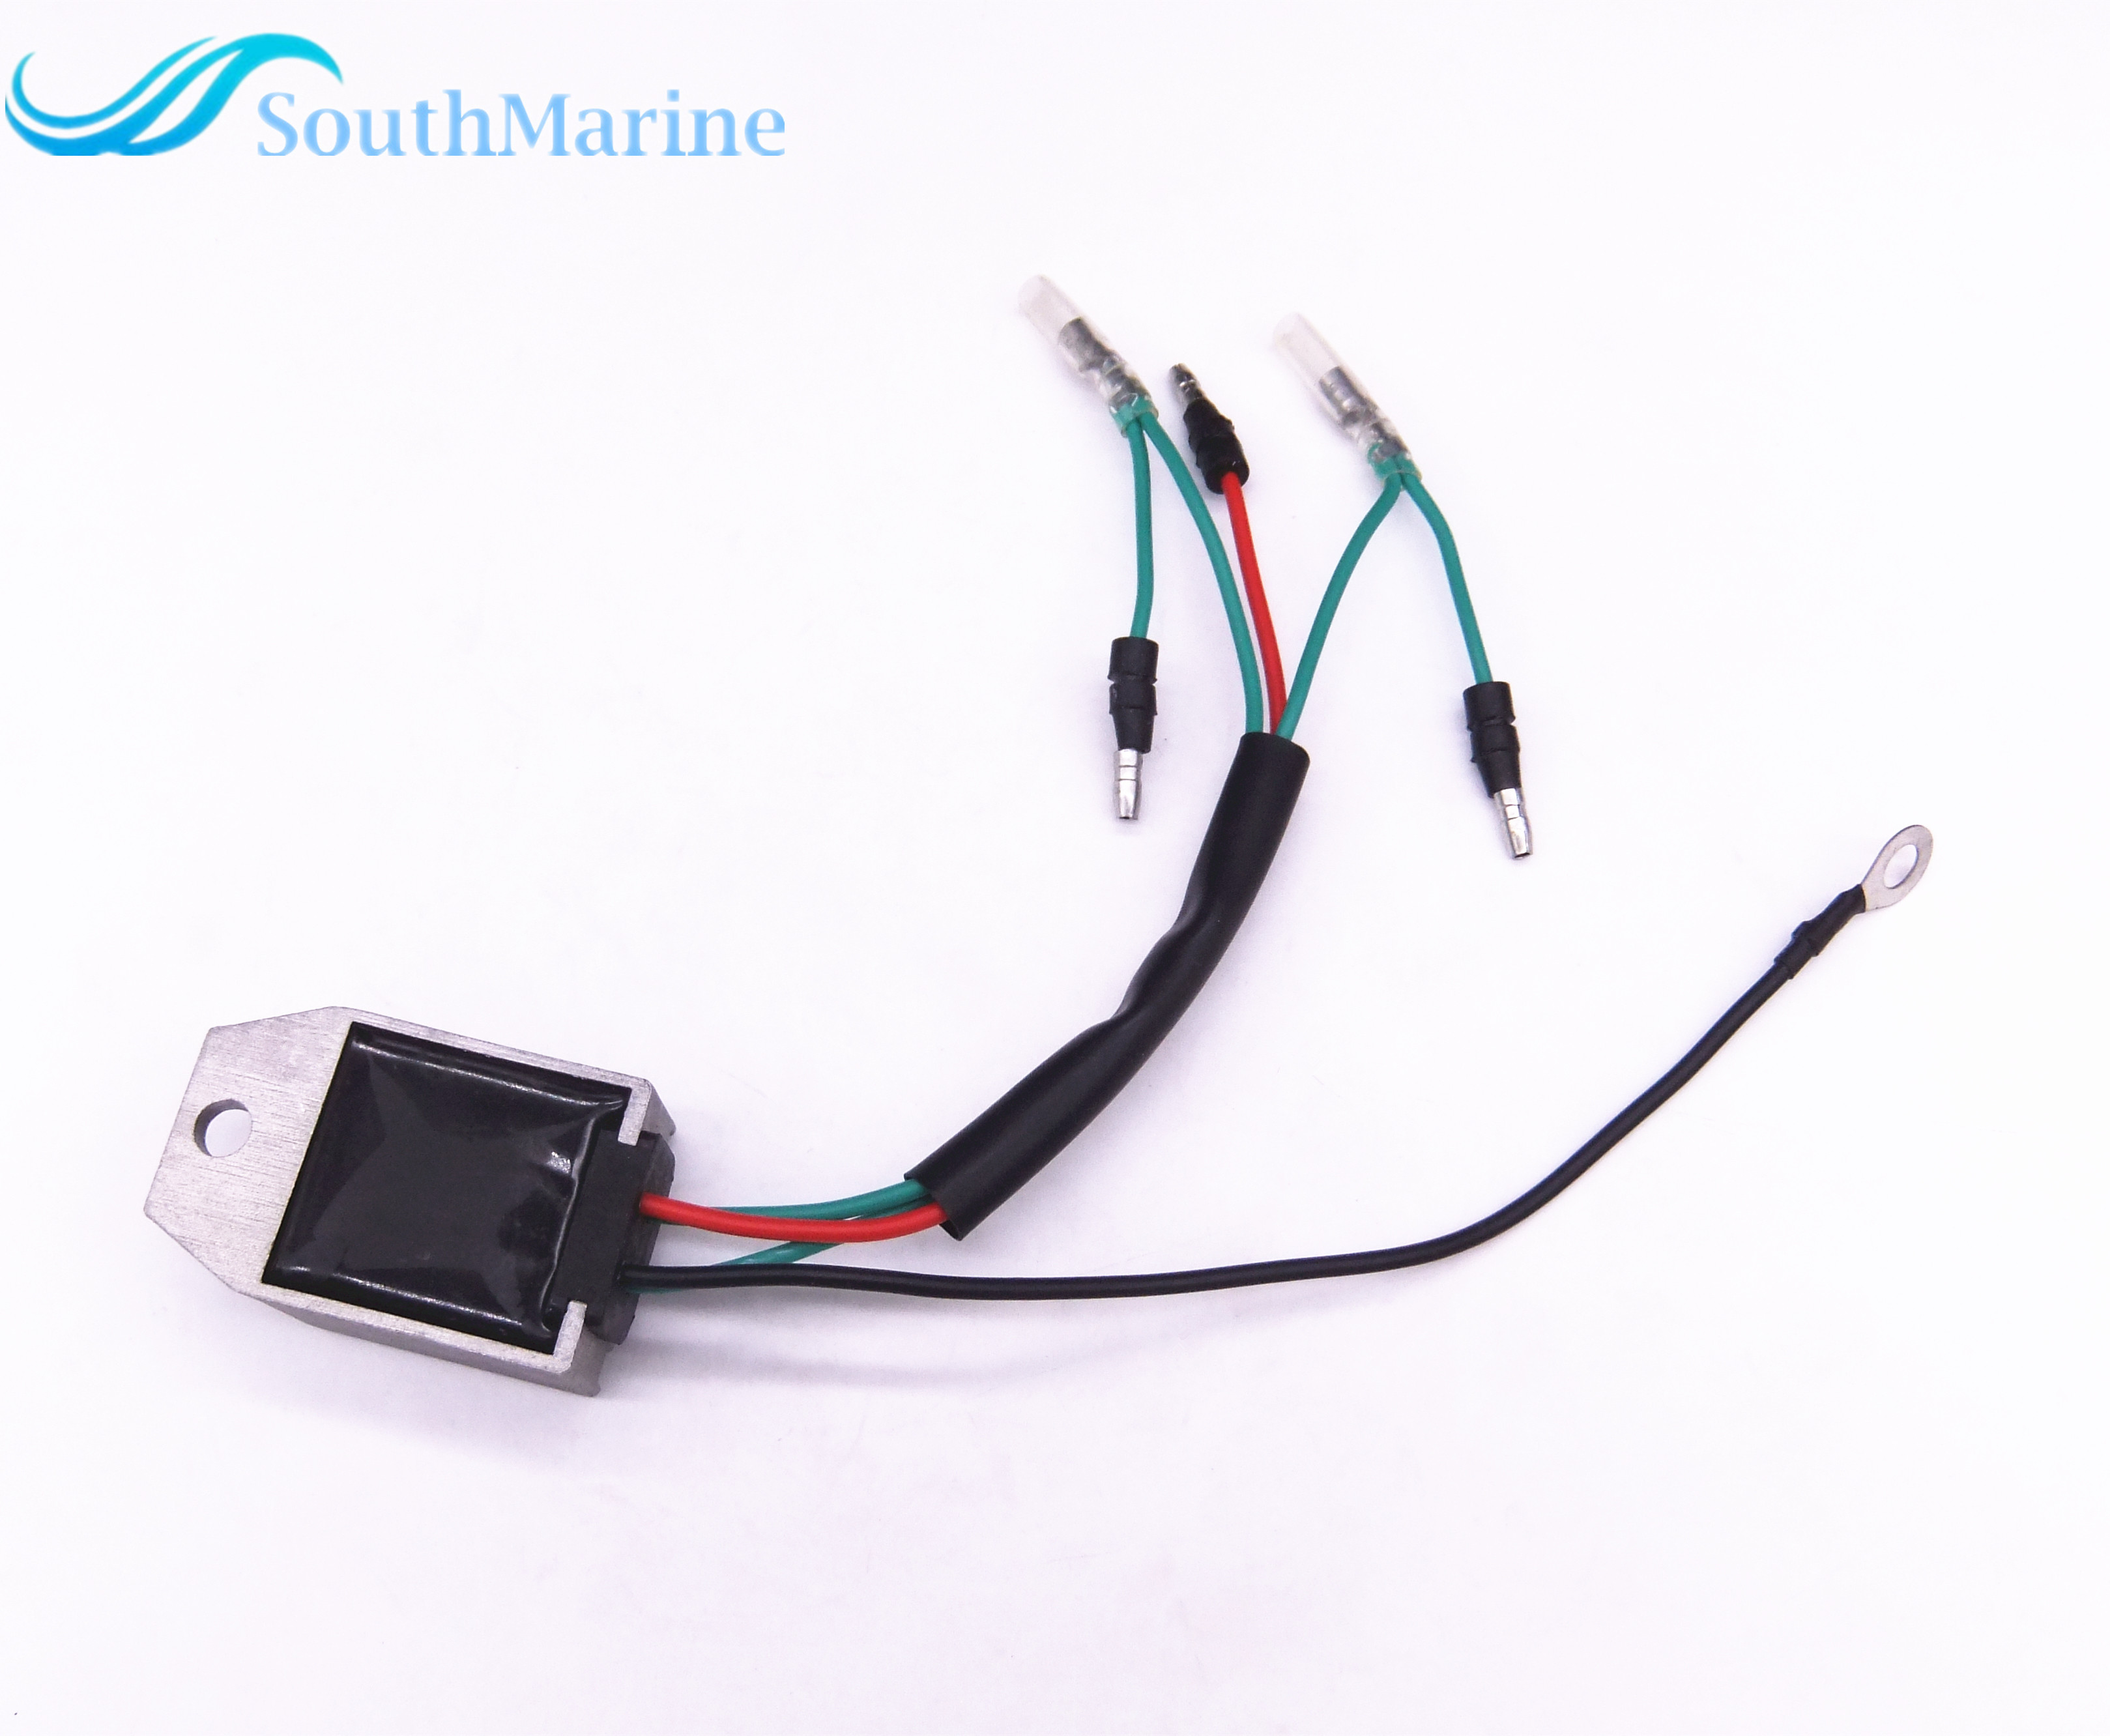 boat motor rectifier regulator assy 6j8 81960 00 for yamaha outboard motors in boat engine from automobiles motorcycles on aliexpress com alibaba  [ 3238 x 2664 Pixel ]